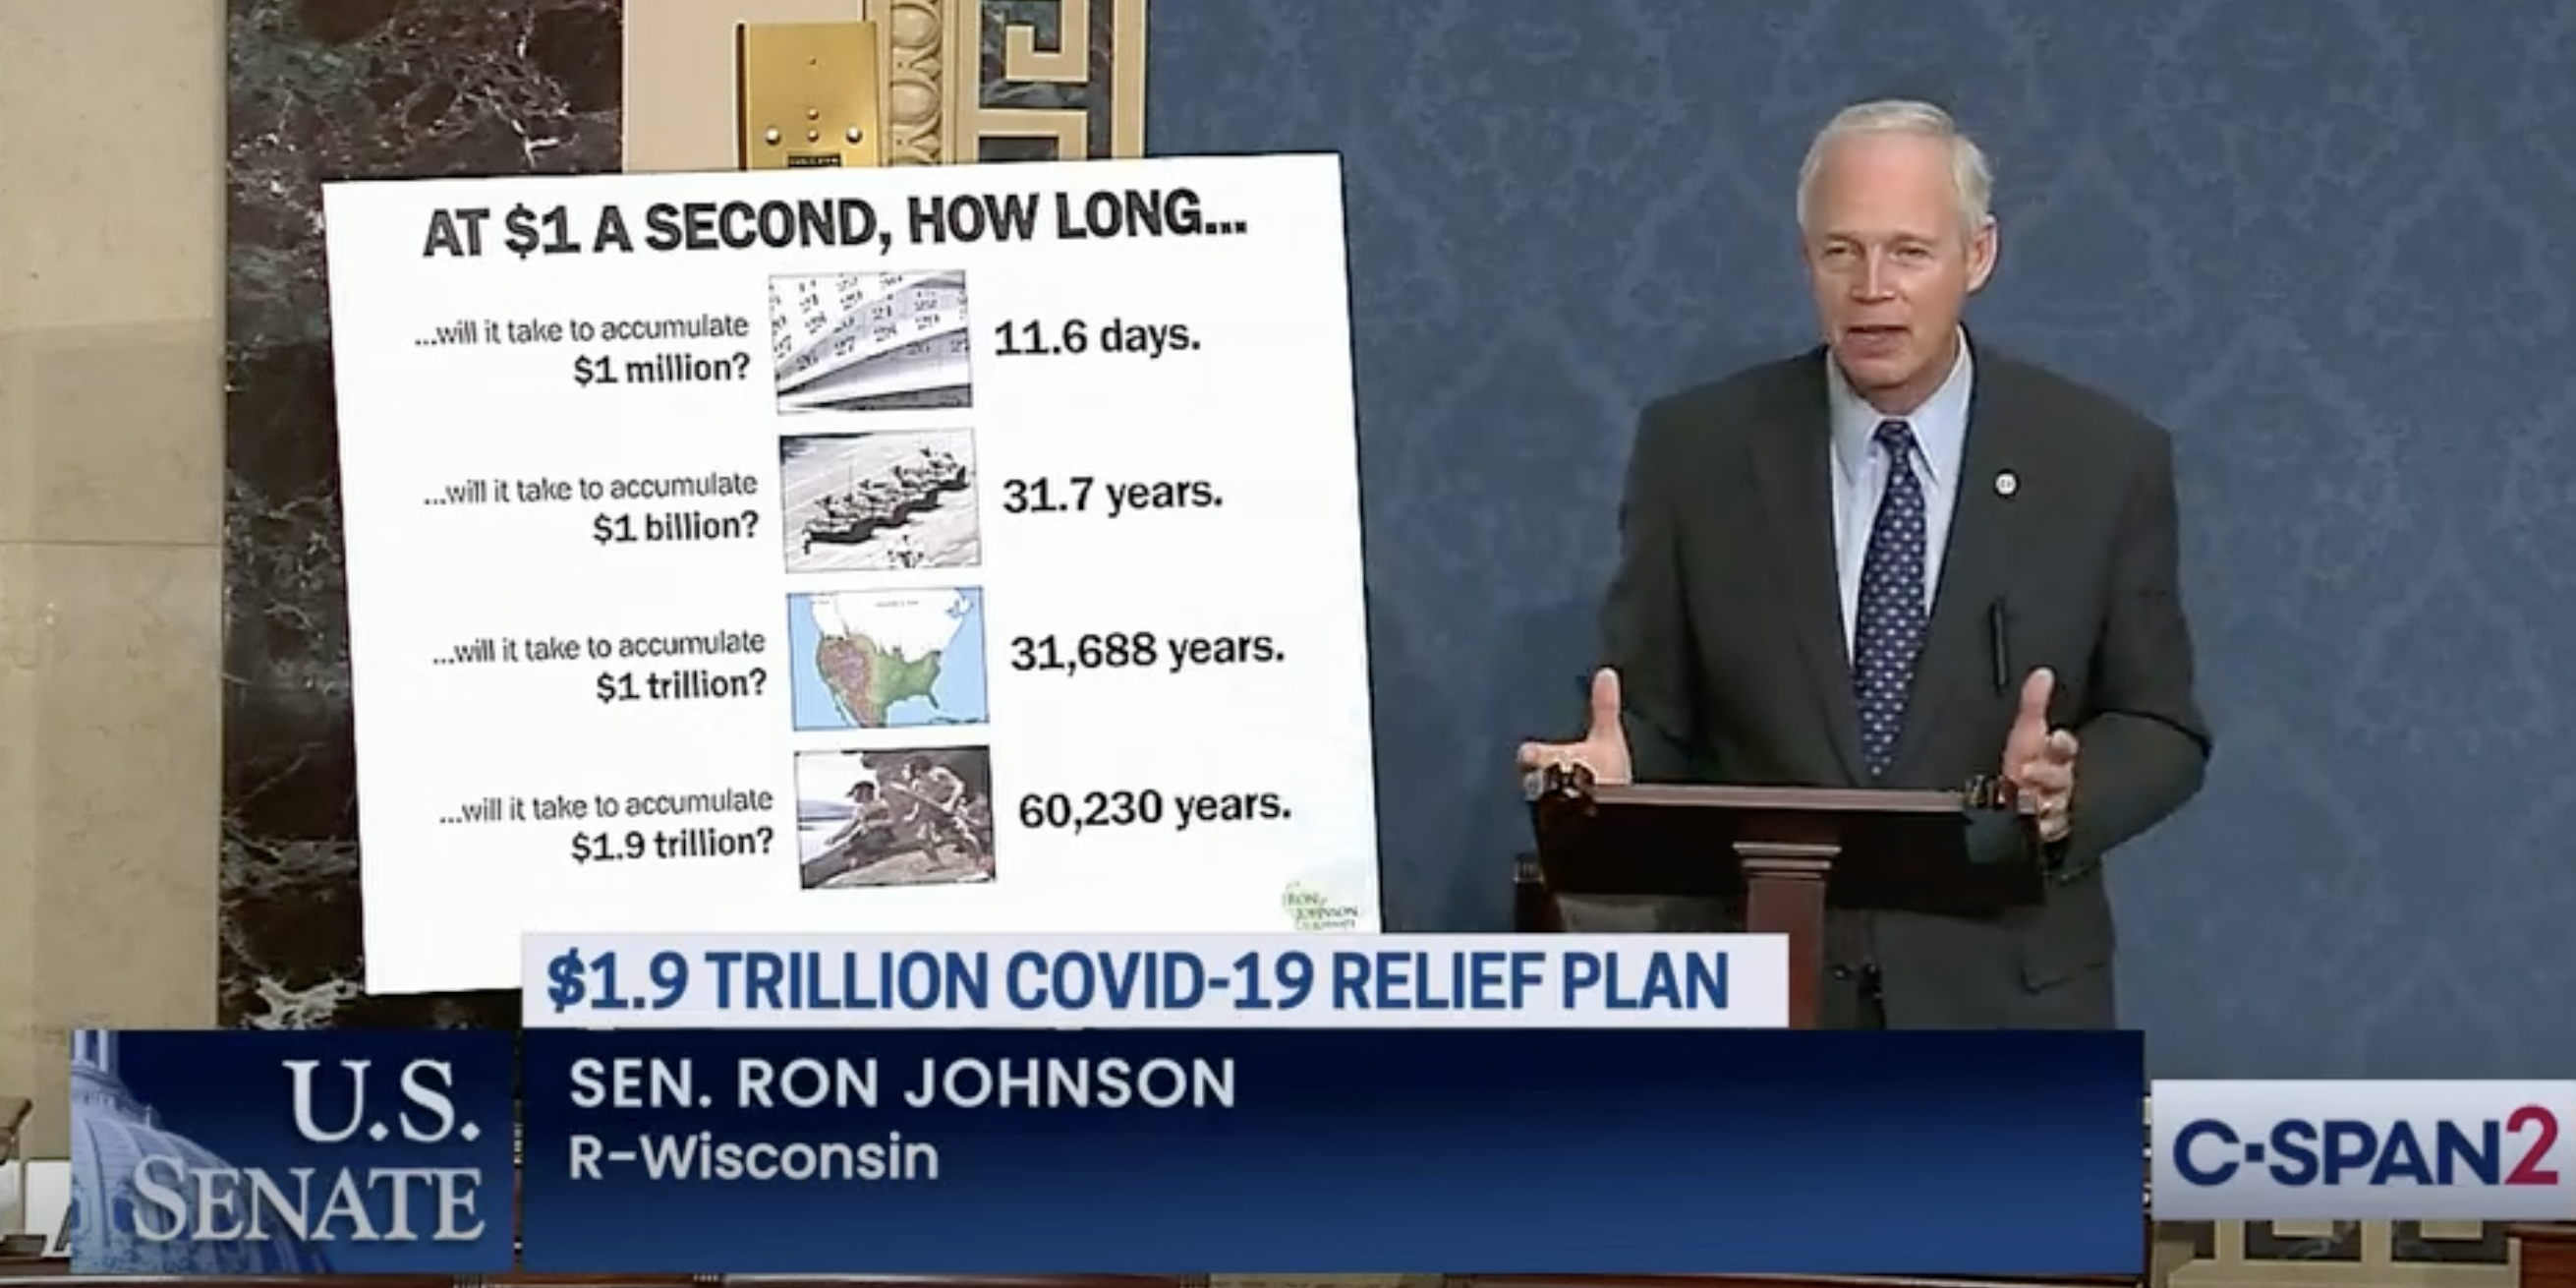 Here are some of Sen. Ron Johnson's thoughts on the $1.9 trillion COVID-19 relief bill